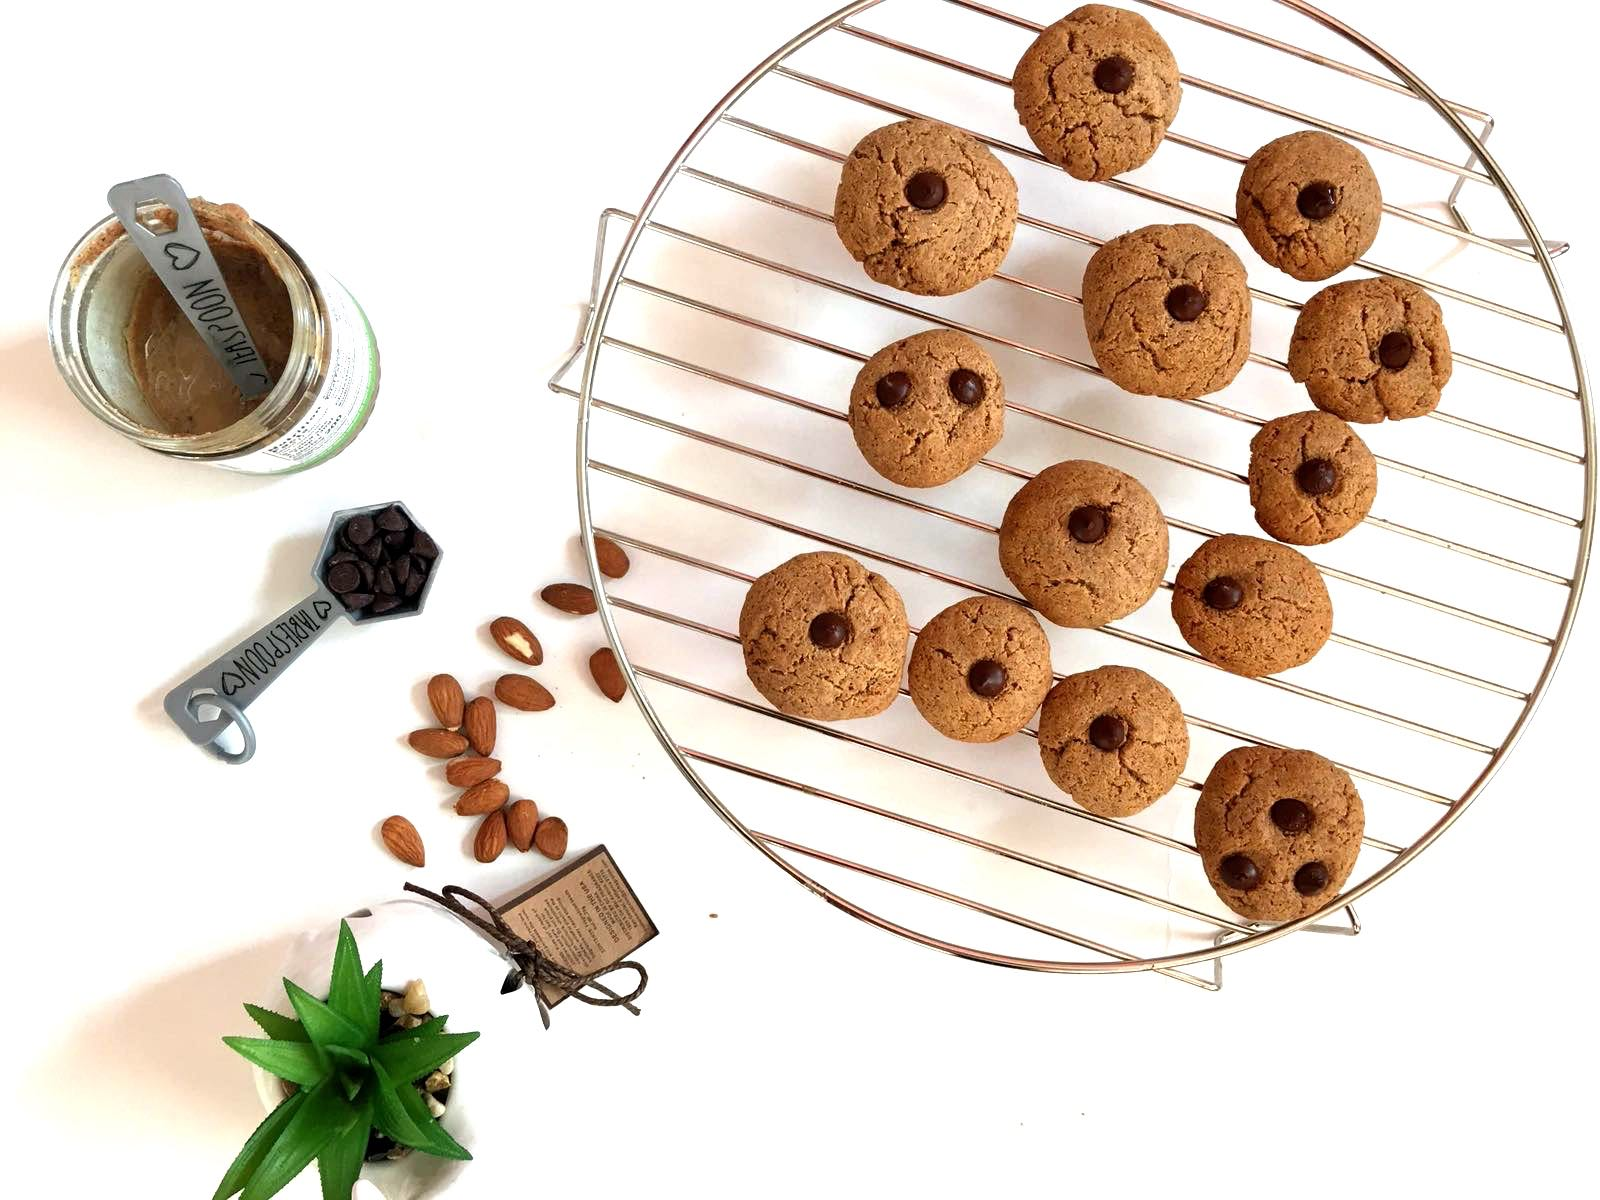 FLOURLESS QUICK FLOURLESS ALMOND BUTTER COOKIES